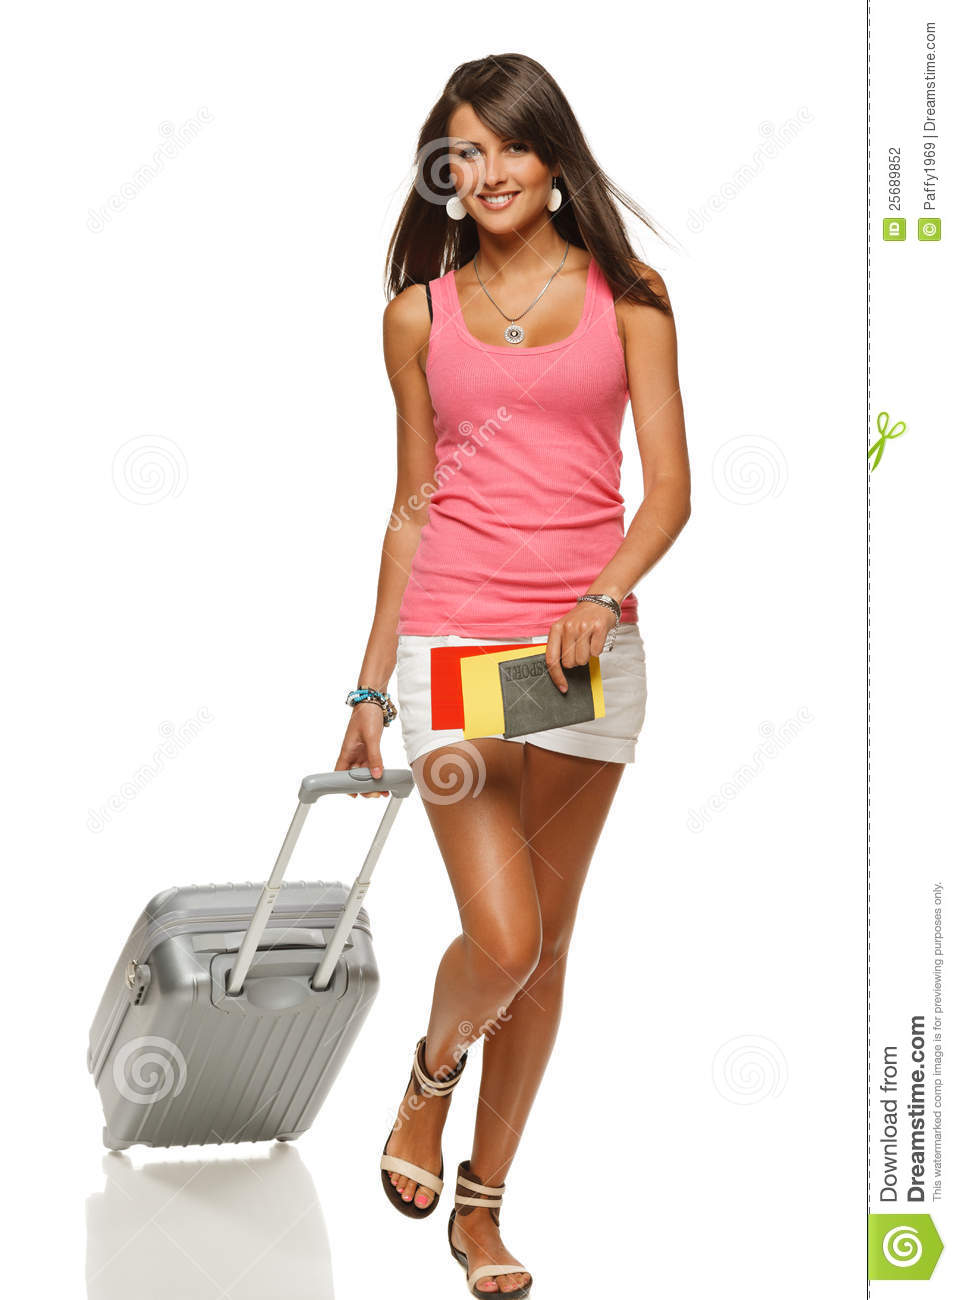 Shoes online. Girls travel luggage